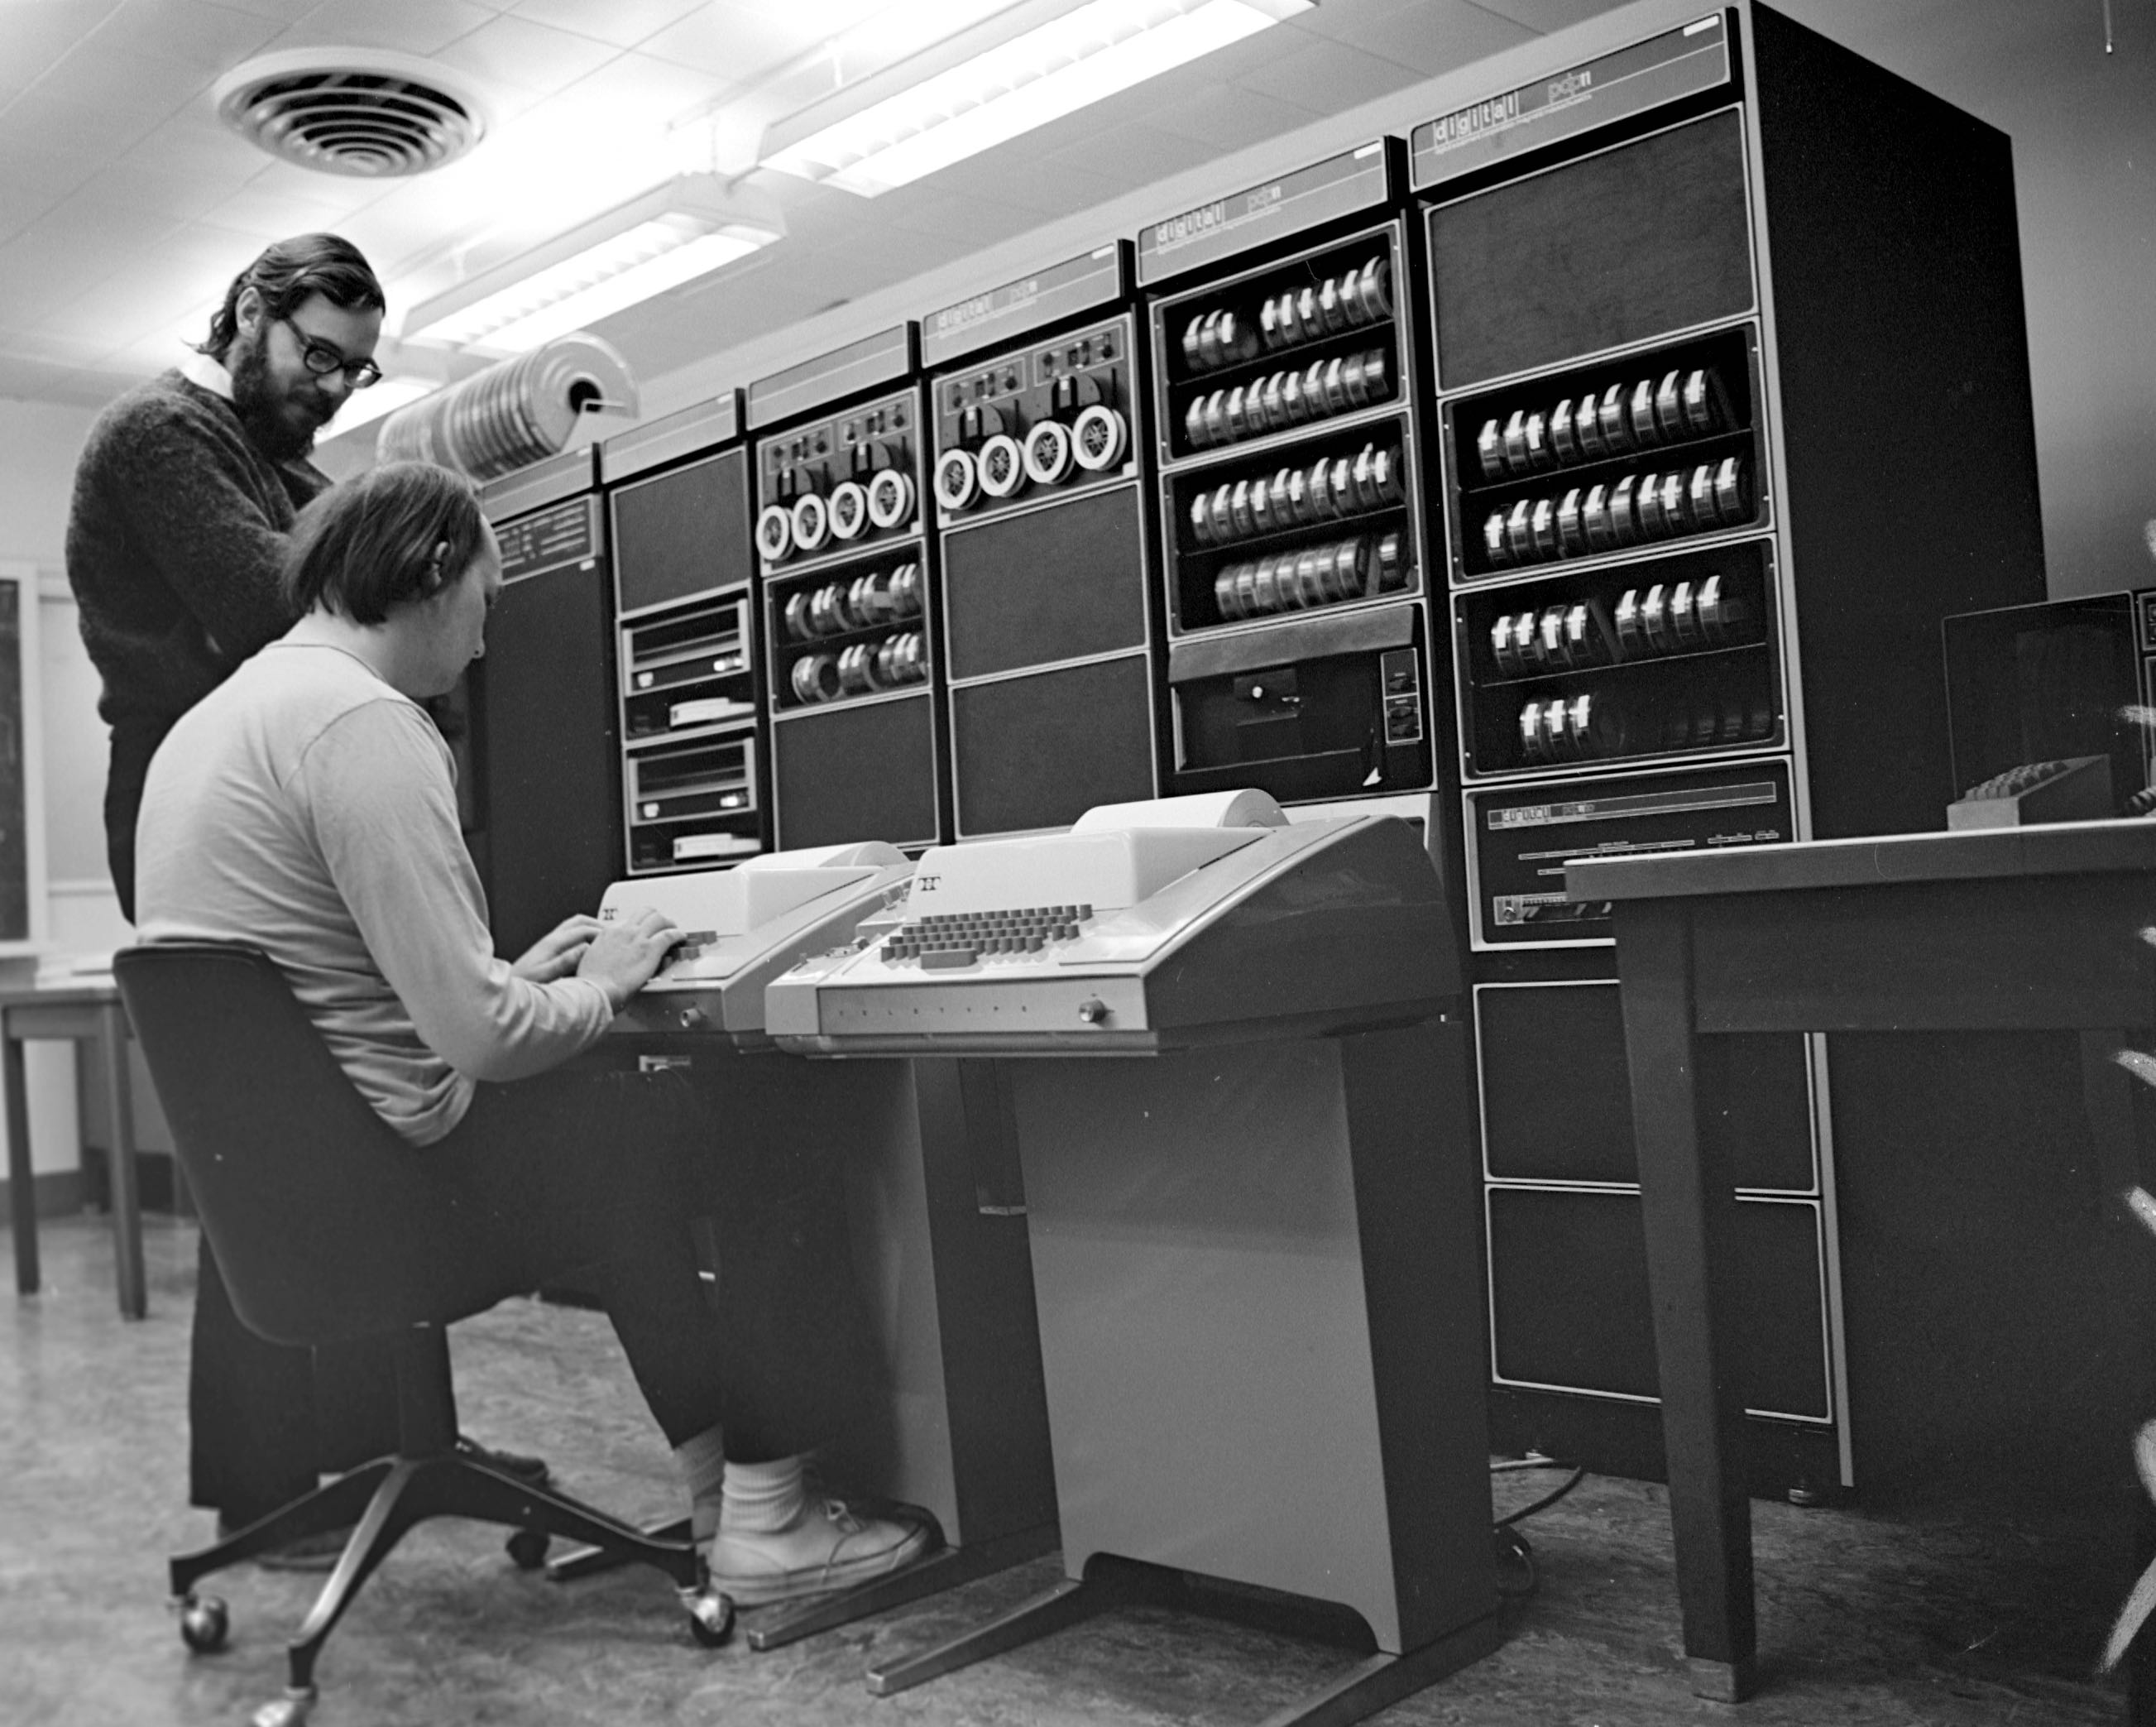 The fathers of Unix — Dennis Ritchie and Ken Thompson — at Bell Labs circa 1970